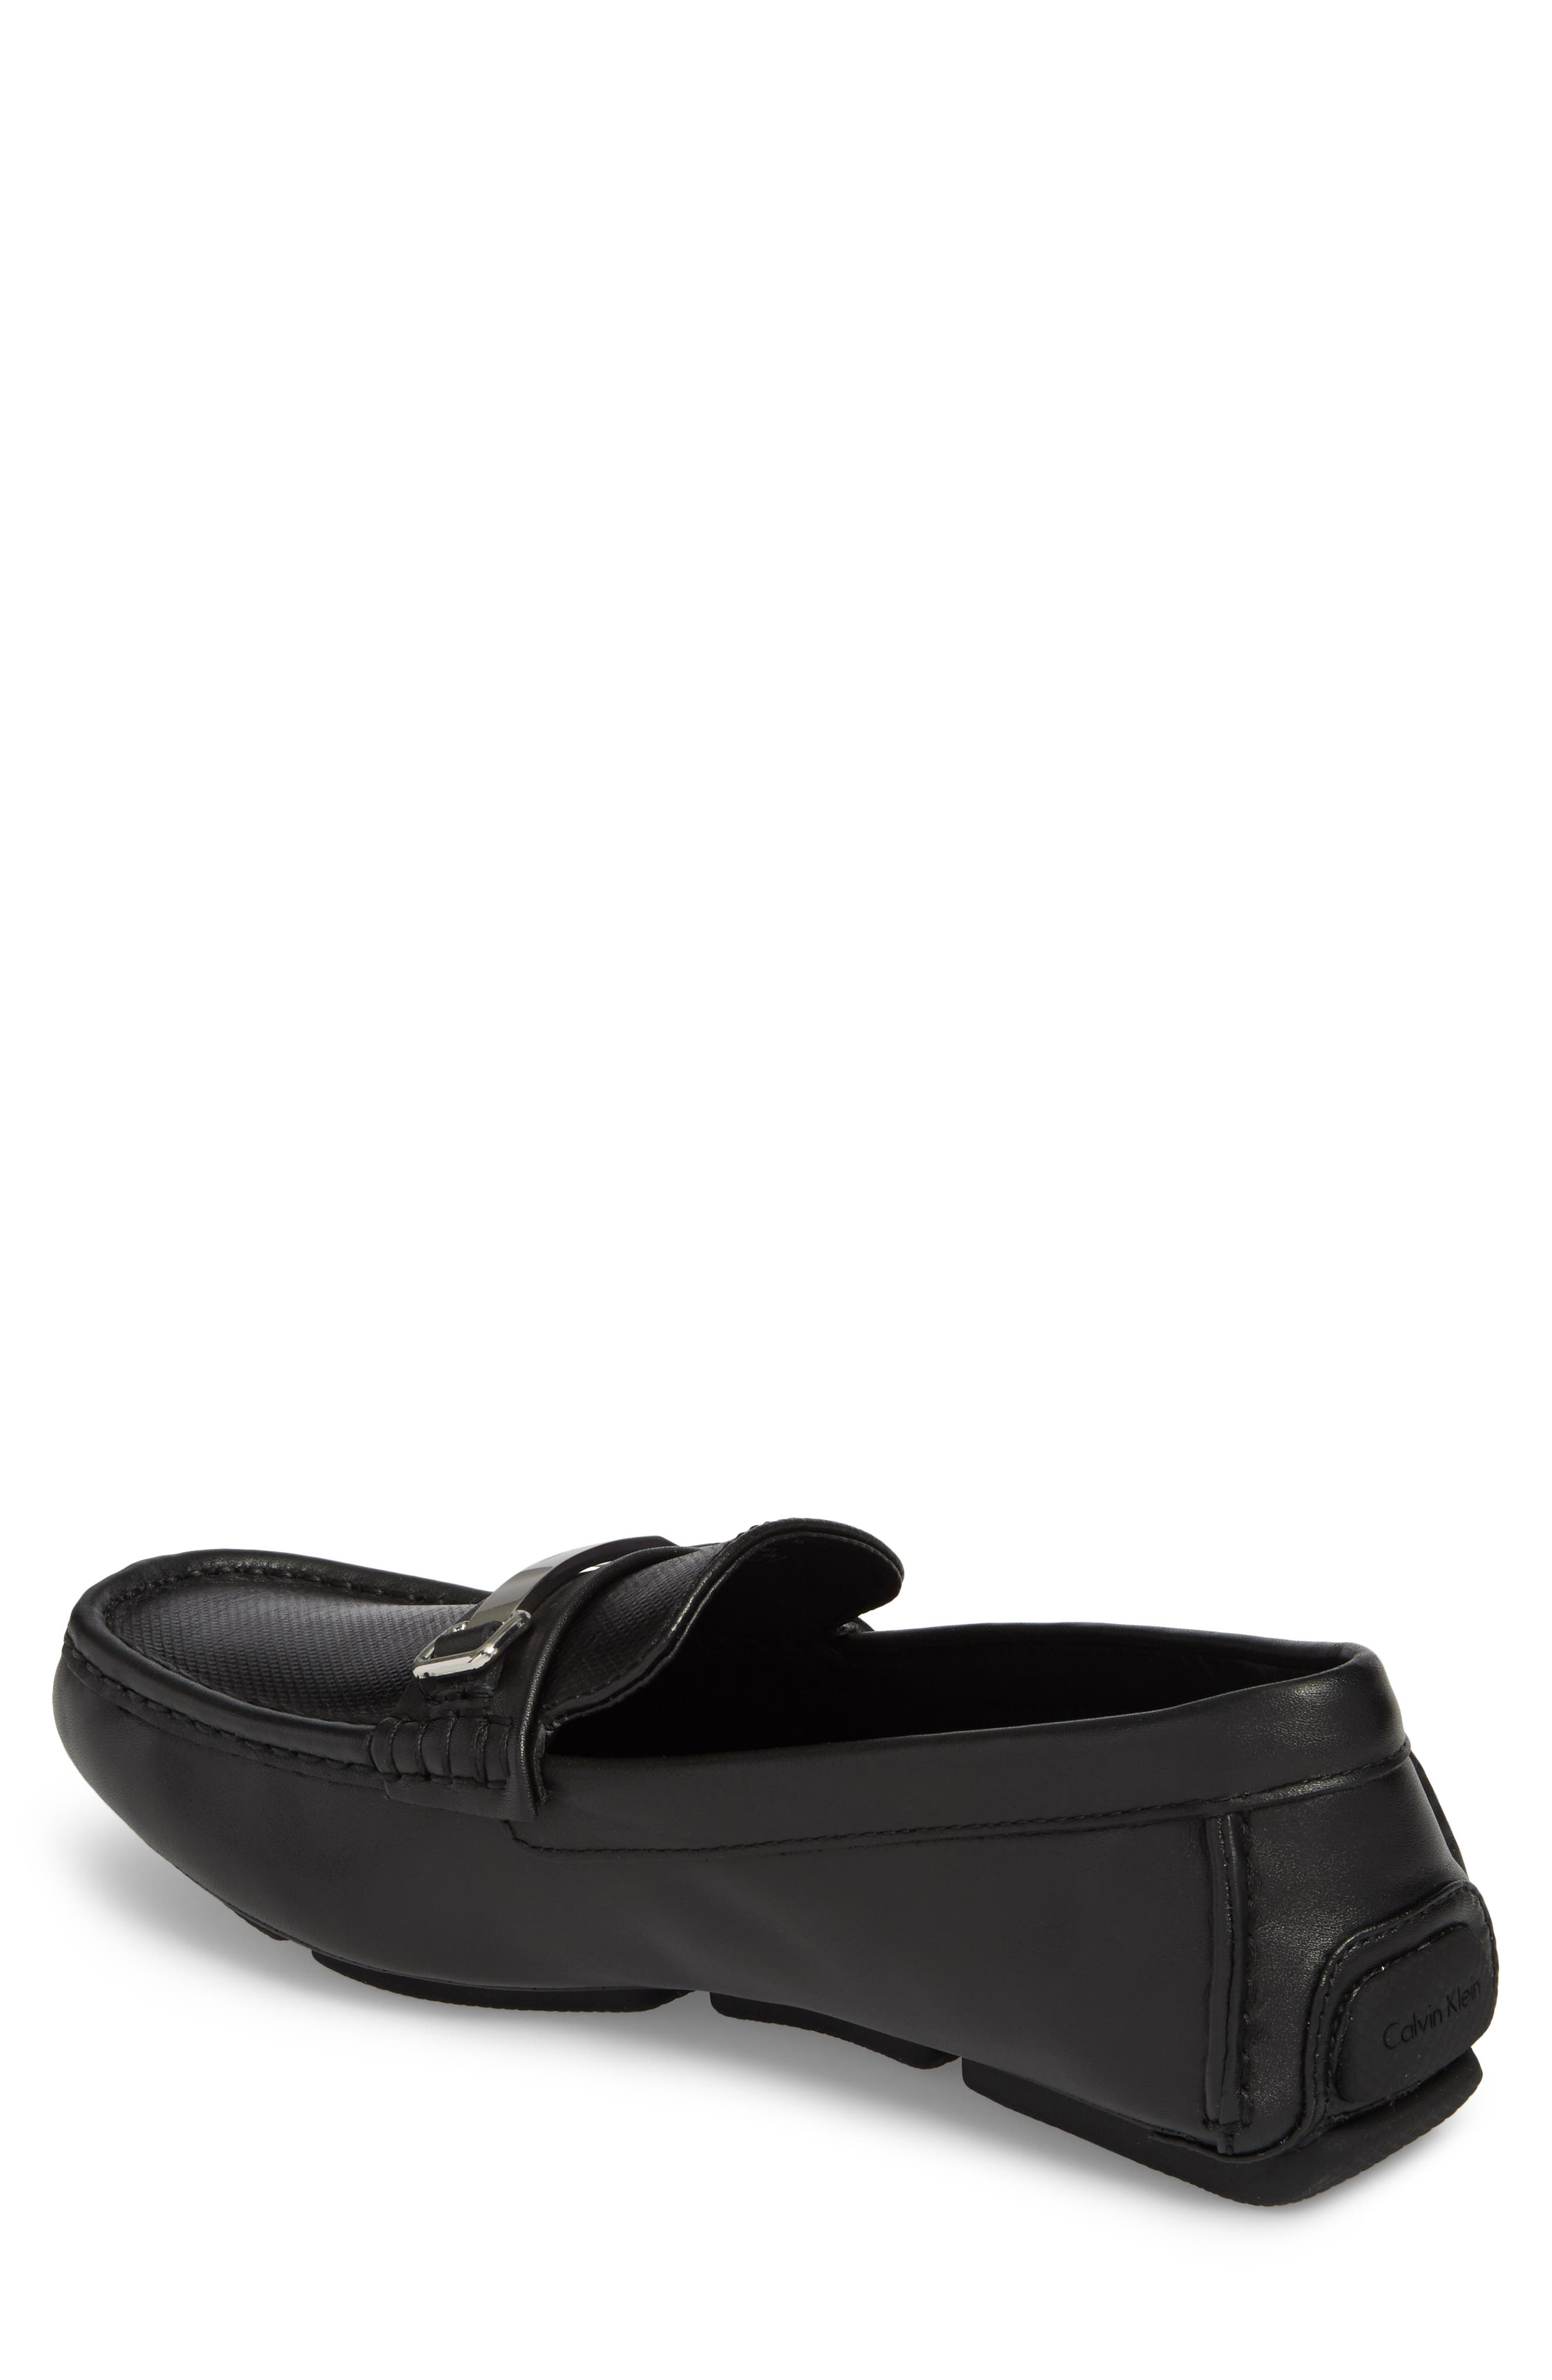 Maddix Textured Driving Moccasin,                             Alternate thumbnail 2, color,                             BLACK LEATHER